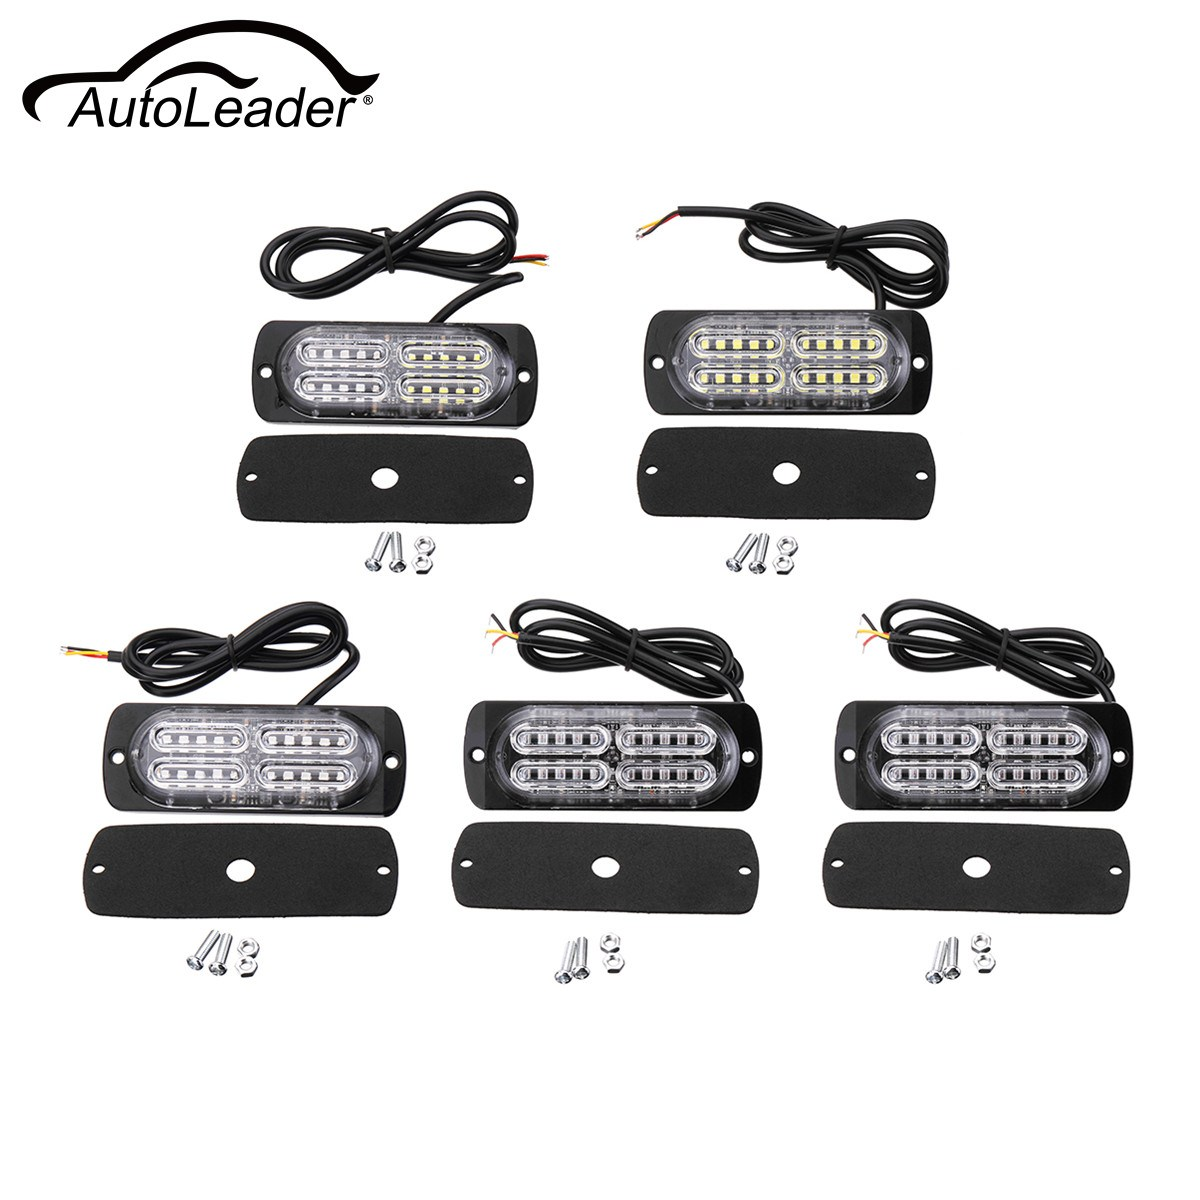 12-24V 20LED Car Truck Trailer Side Marker Light Waterproof Lorry Buses Indicated Lights Rear Lamp Five Color Universal